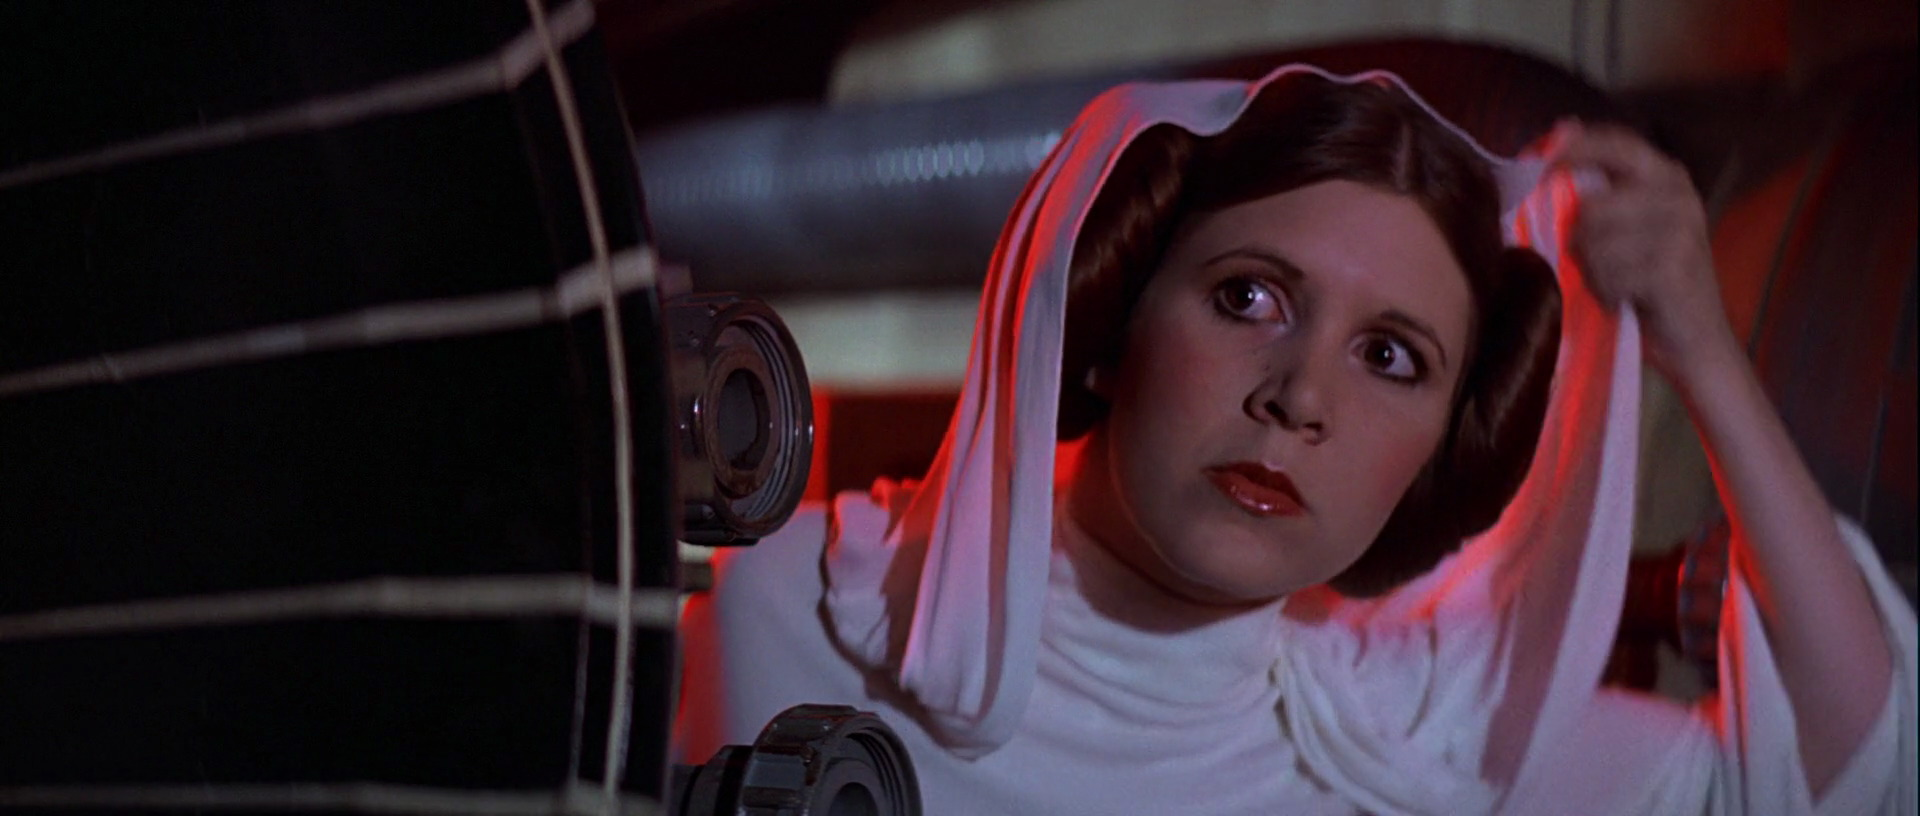 Princess Leia is awesome